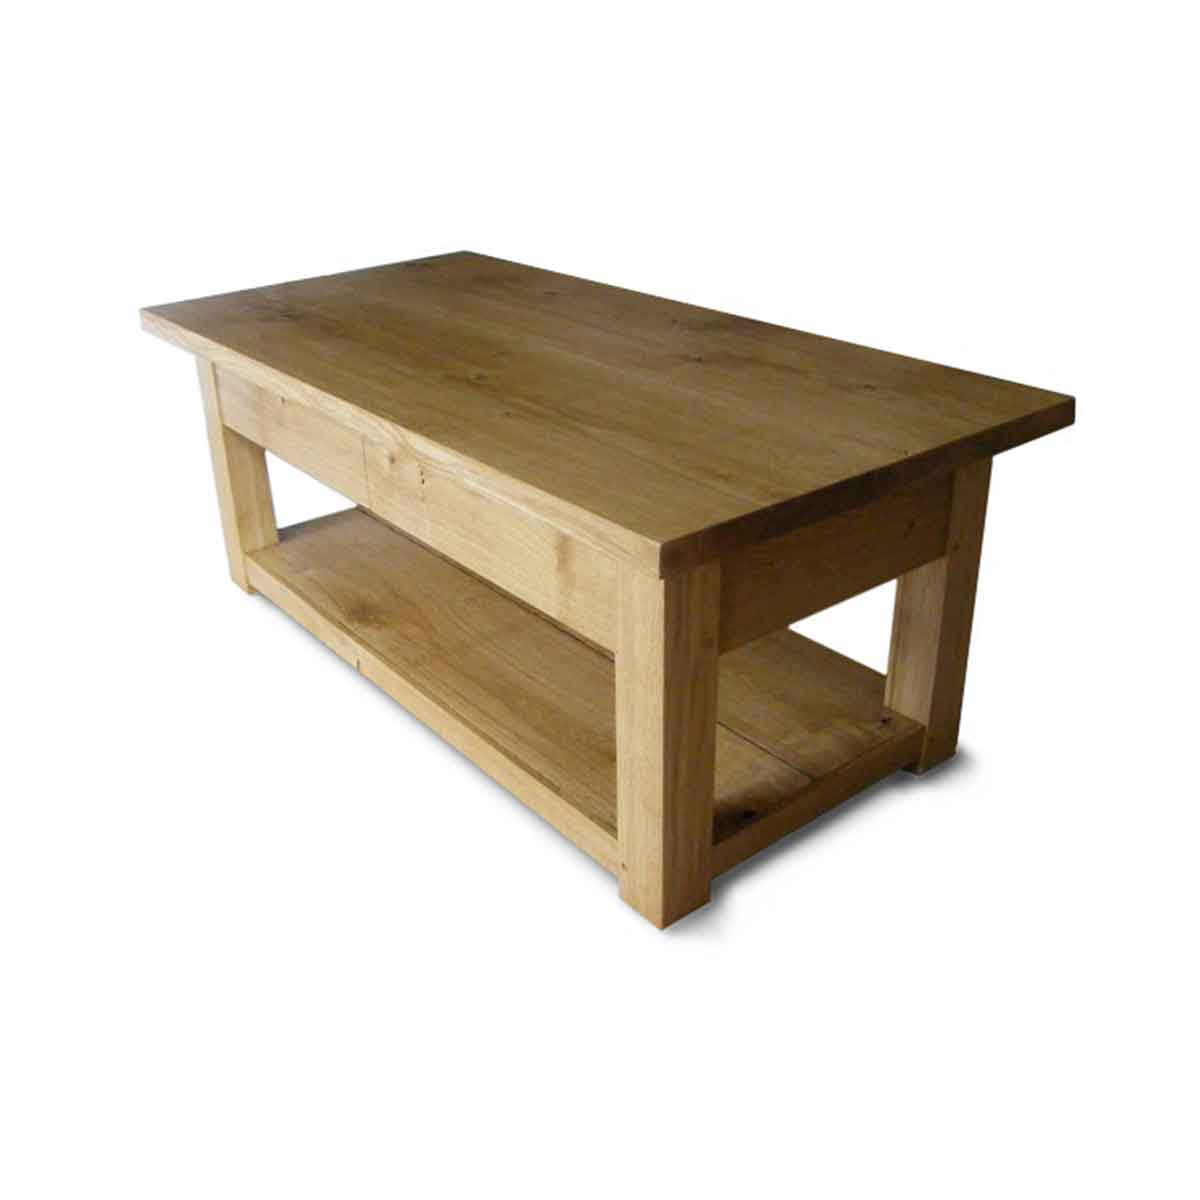 Bespoke Coffee Table Handcrafted in Suffolk